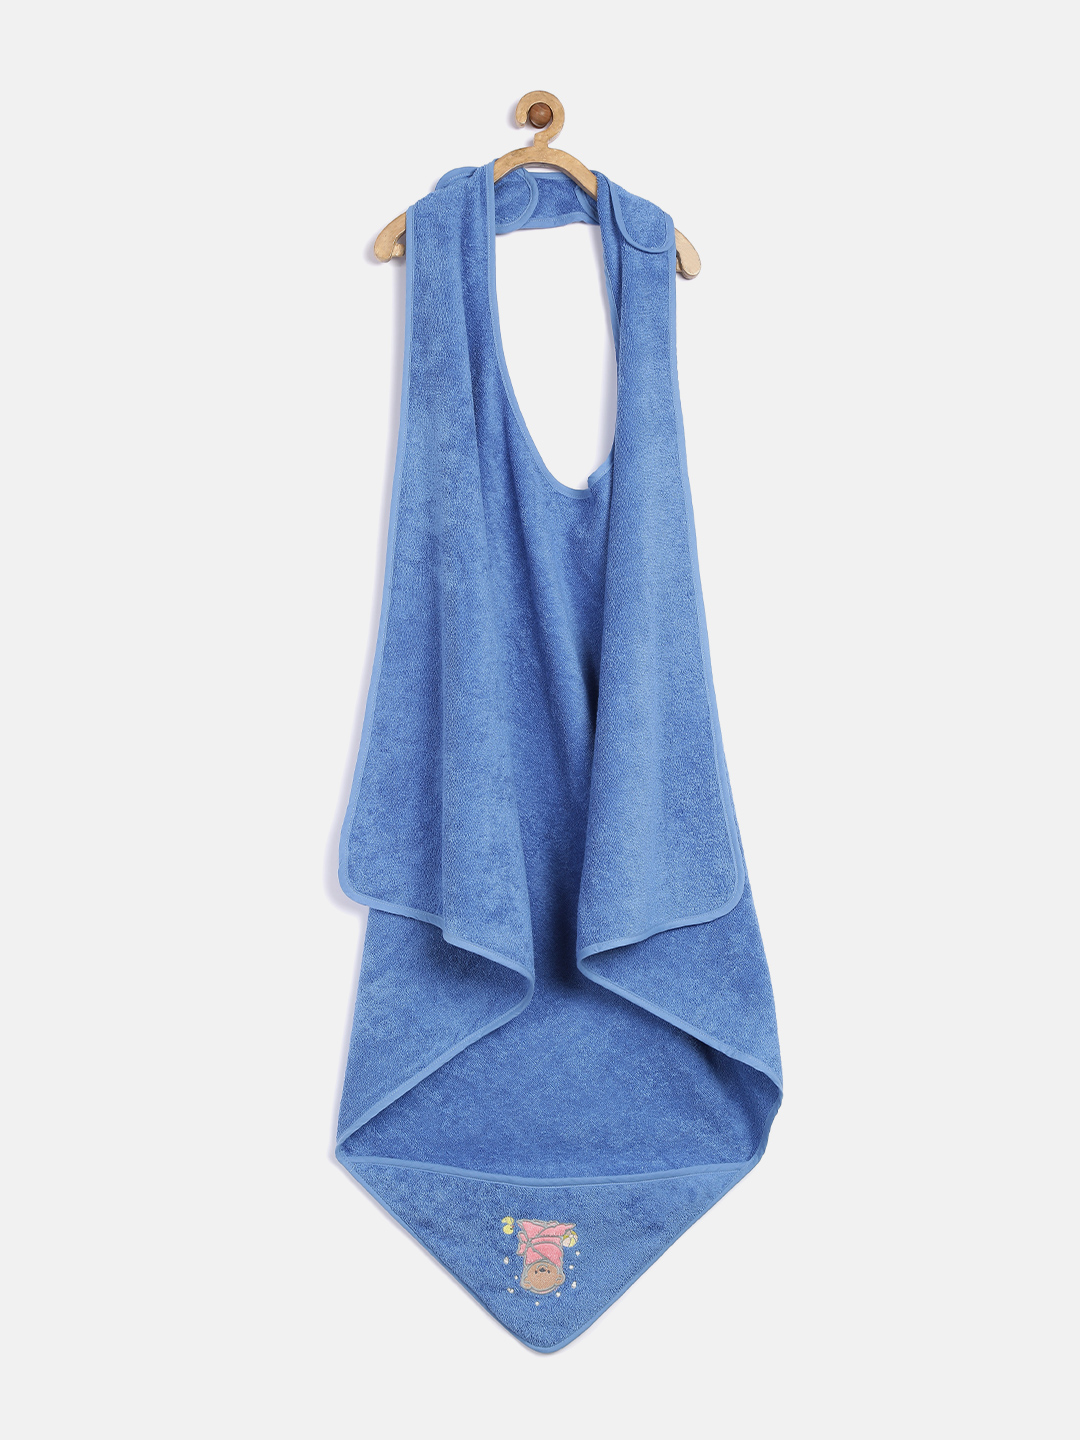 Trident Cuddlies Blue Hooded 500 GSM Cotton Bath Apron